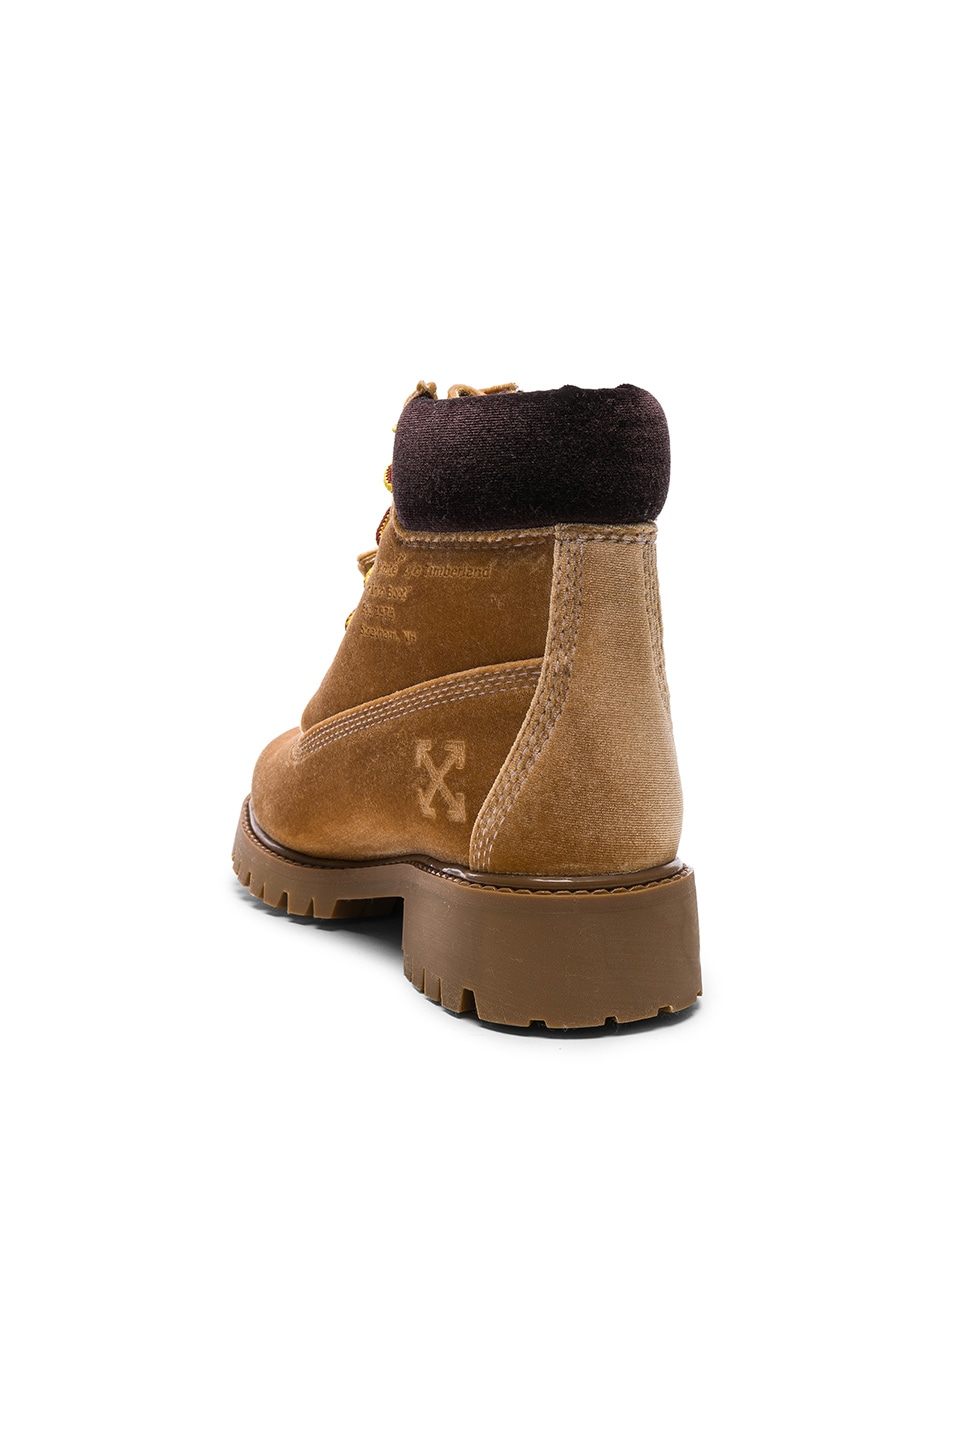 Image 3 of OFF-WHITE x Timberland Velvet Hiking Boots in Camel